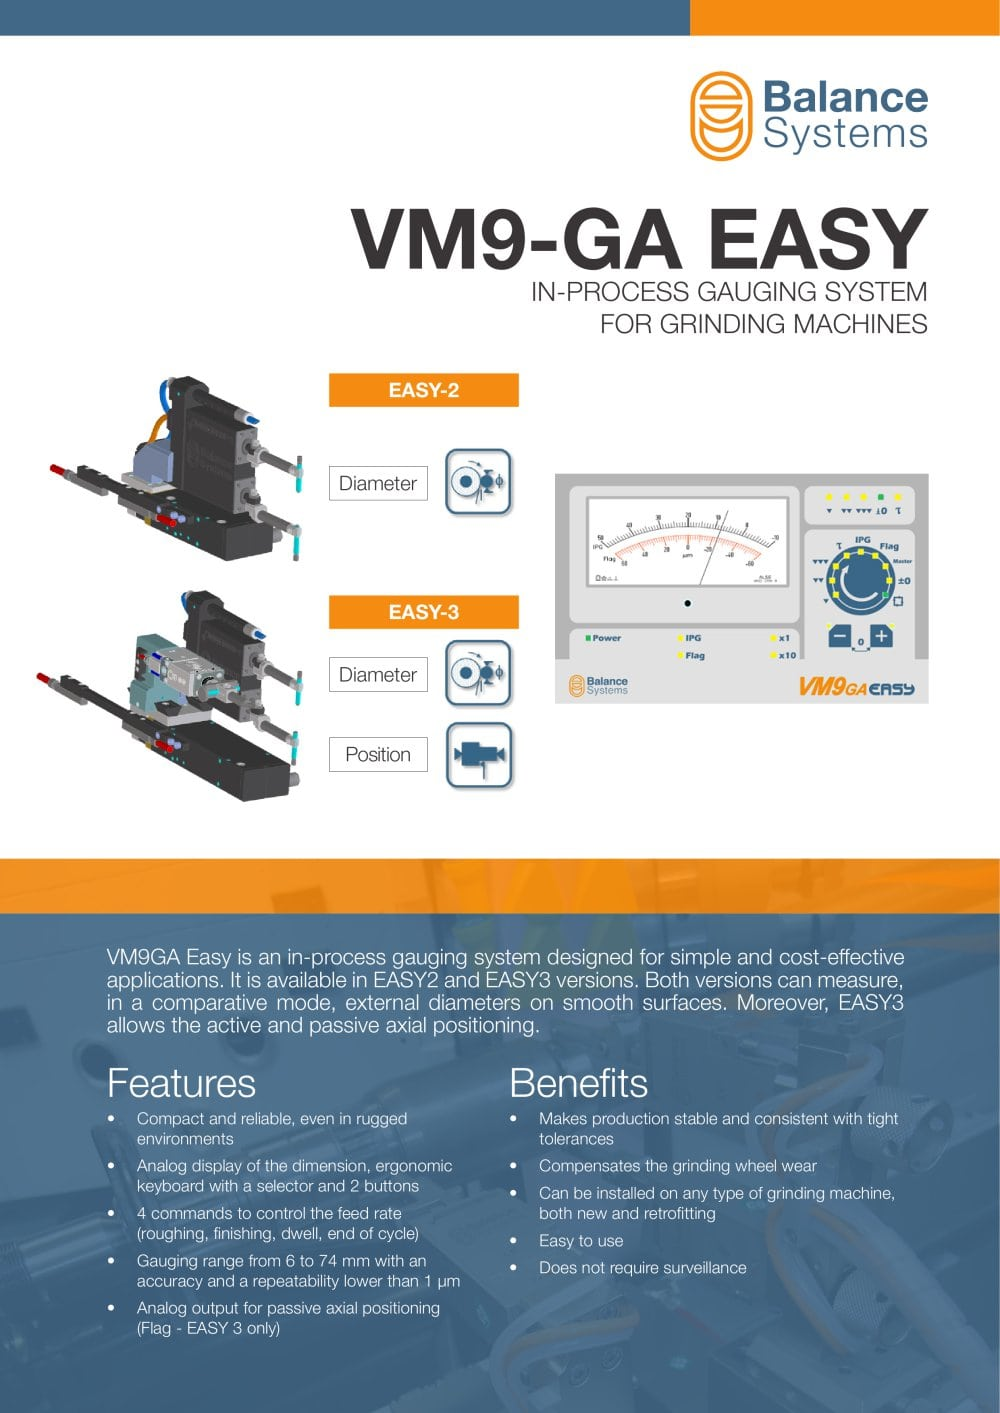 VM9-GA EASY In-Process Gauging System for Grinding Machines ...